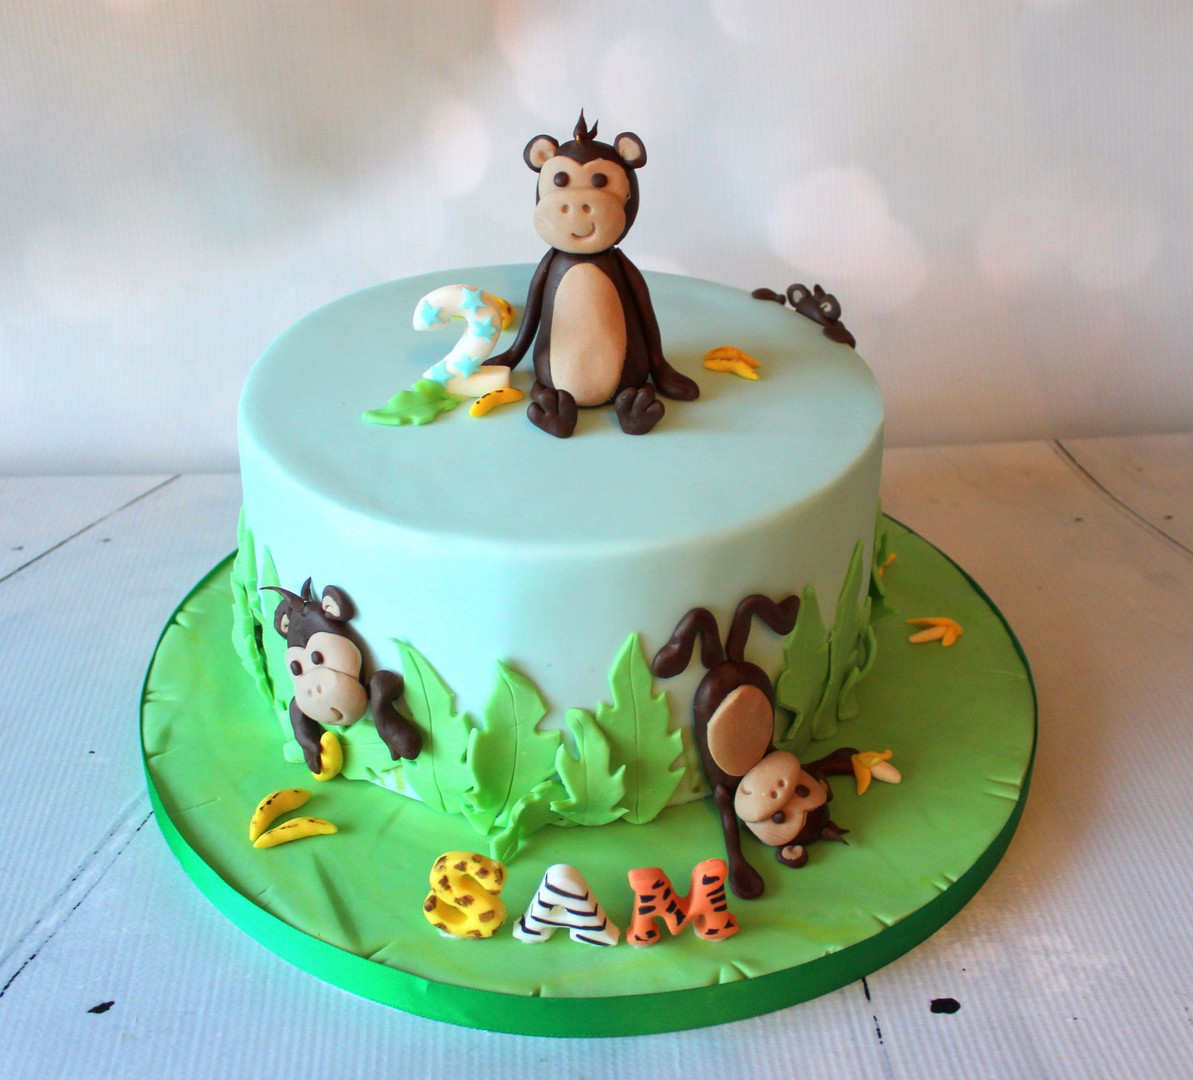 Monkey Cake with figures